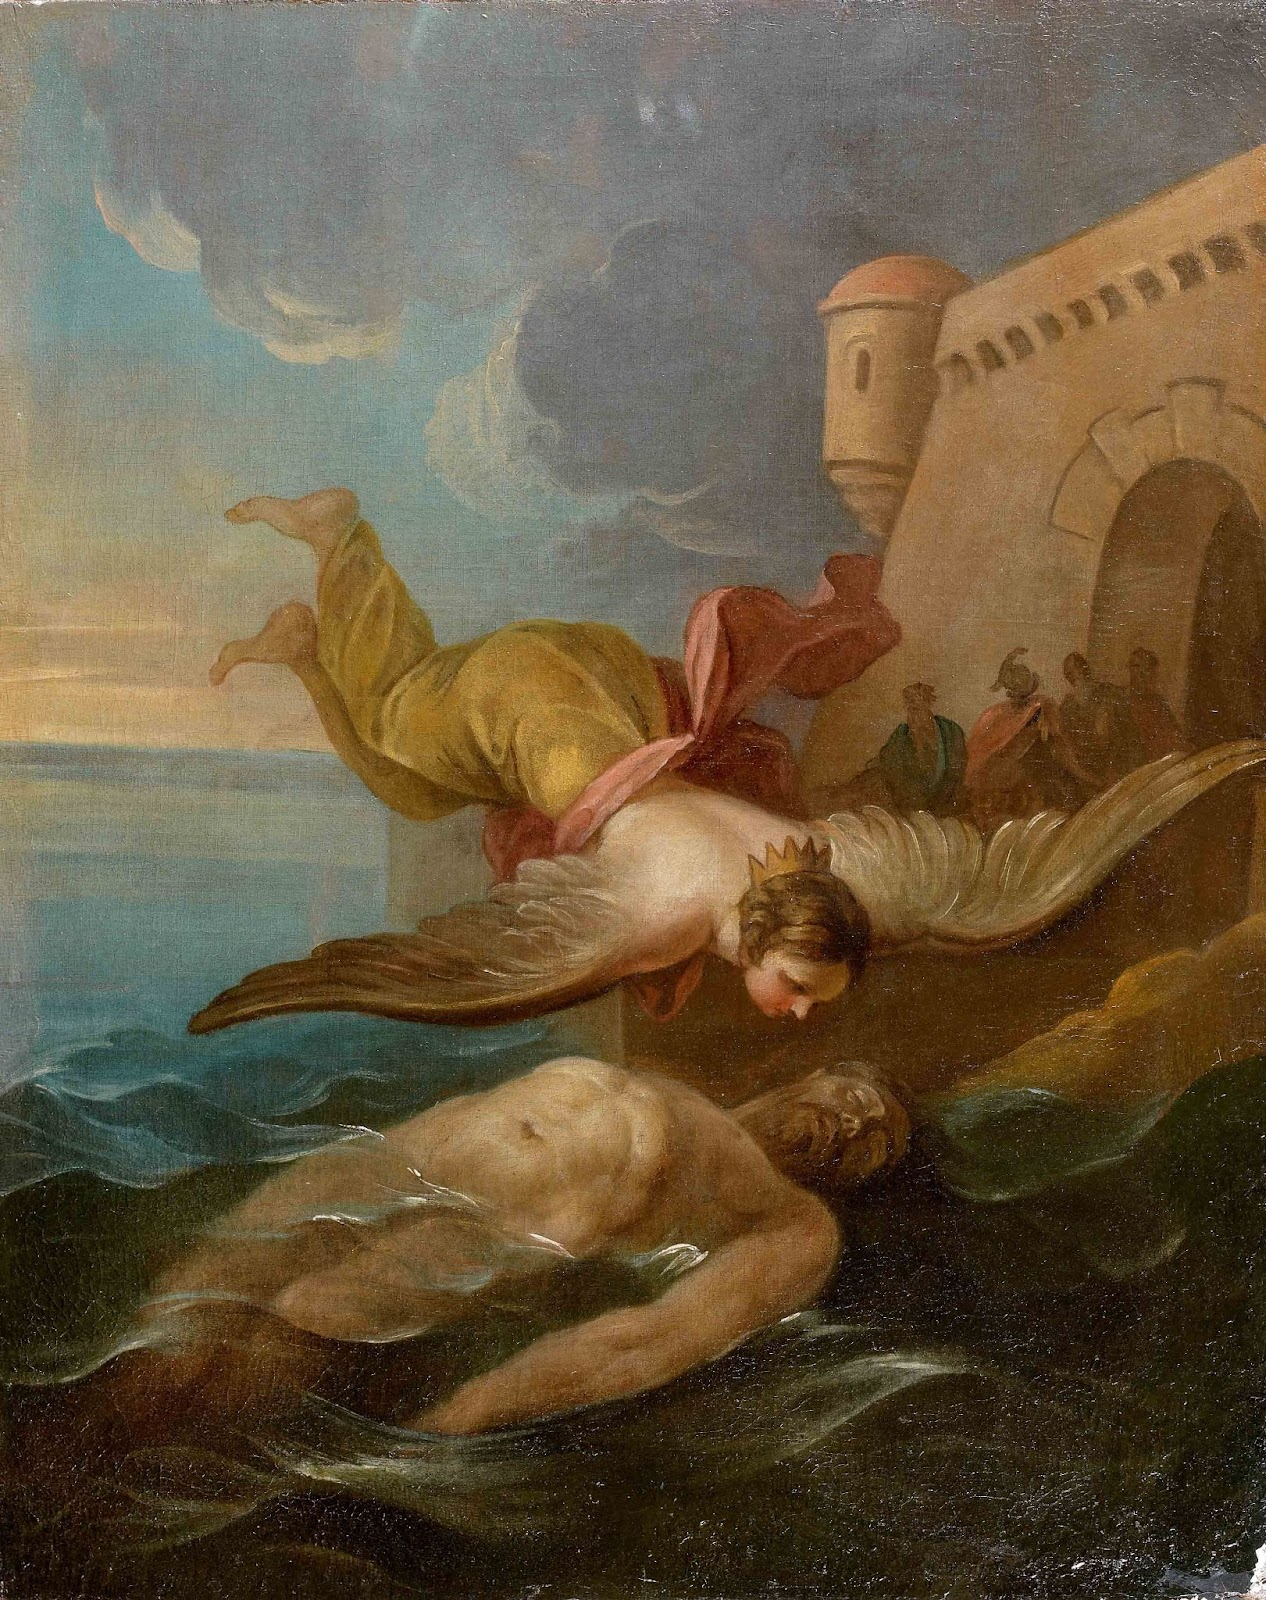 Greek's mythical love stories include Ceyx and Alycone. Mythical love stories: Charles-André van Loo, Ceyx and Alycone, 1750, location unknown.